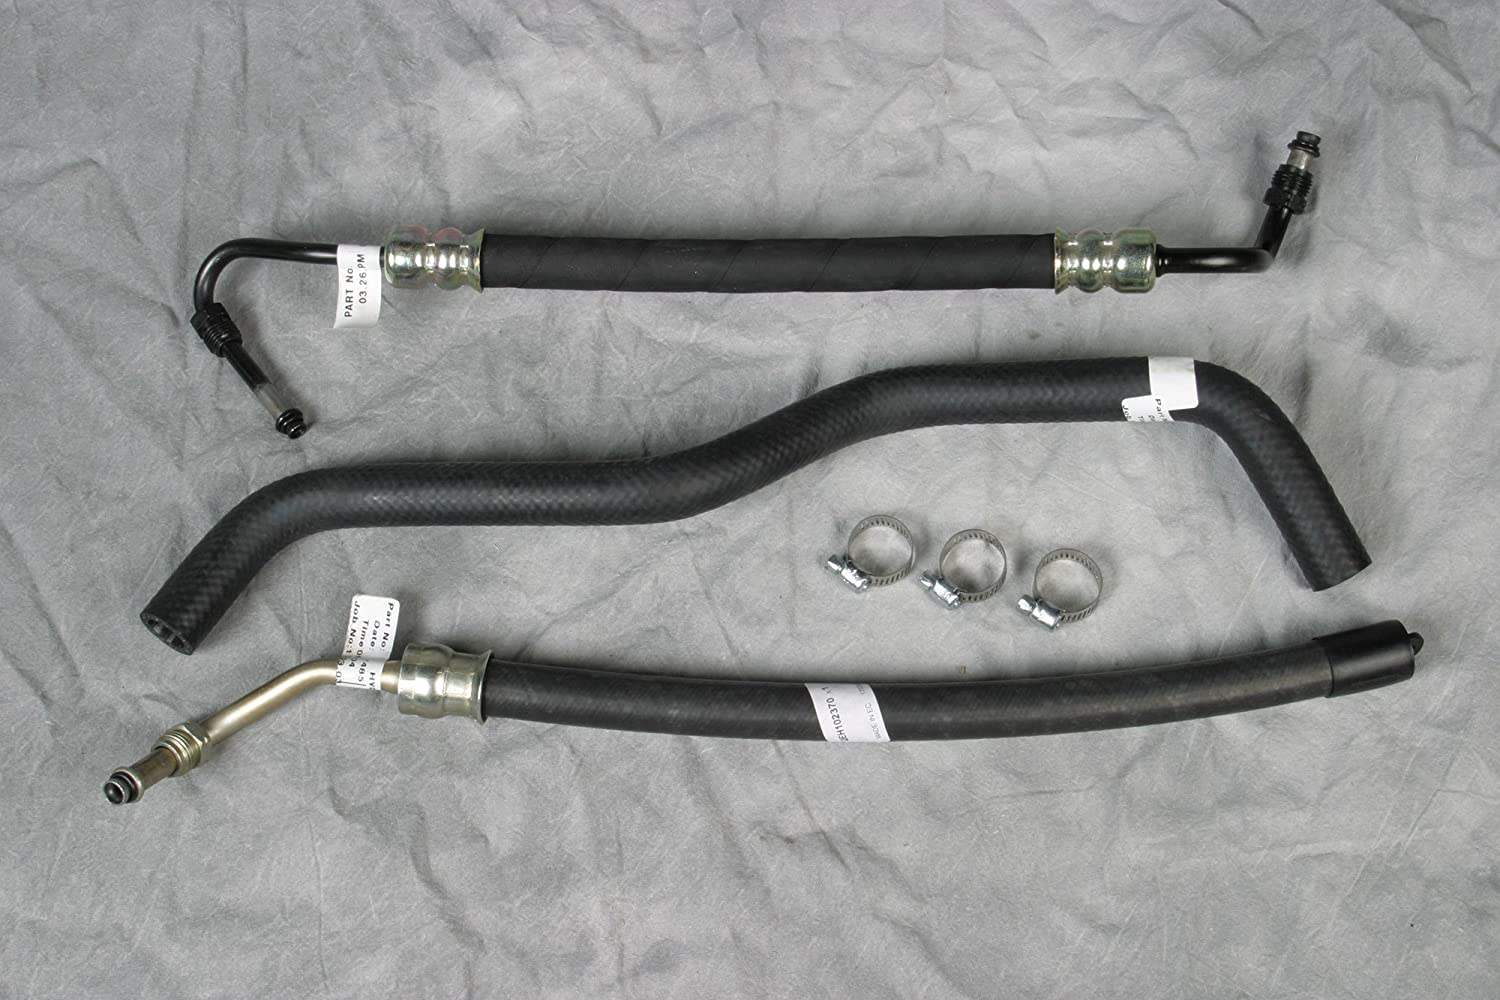 Land Rover Power Steering Hose Kit for Discovery 1 and Range Rover Classic Atlantic British Ltd.